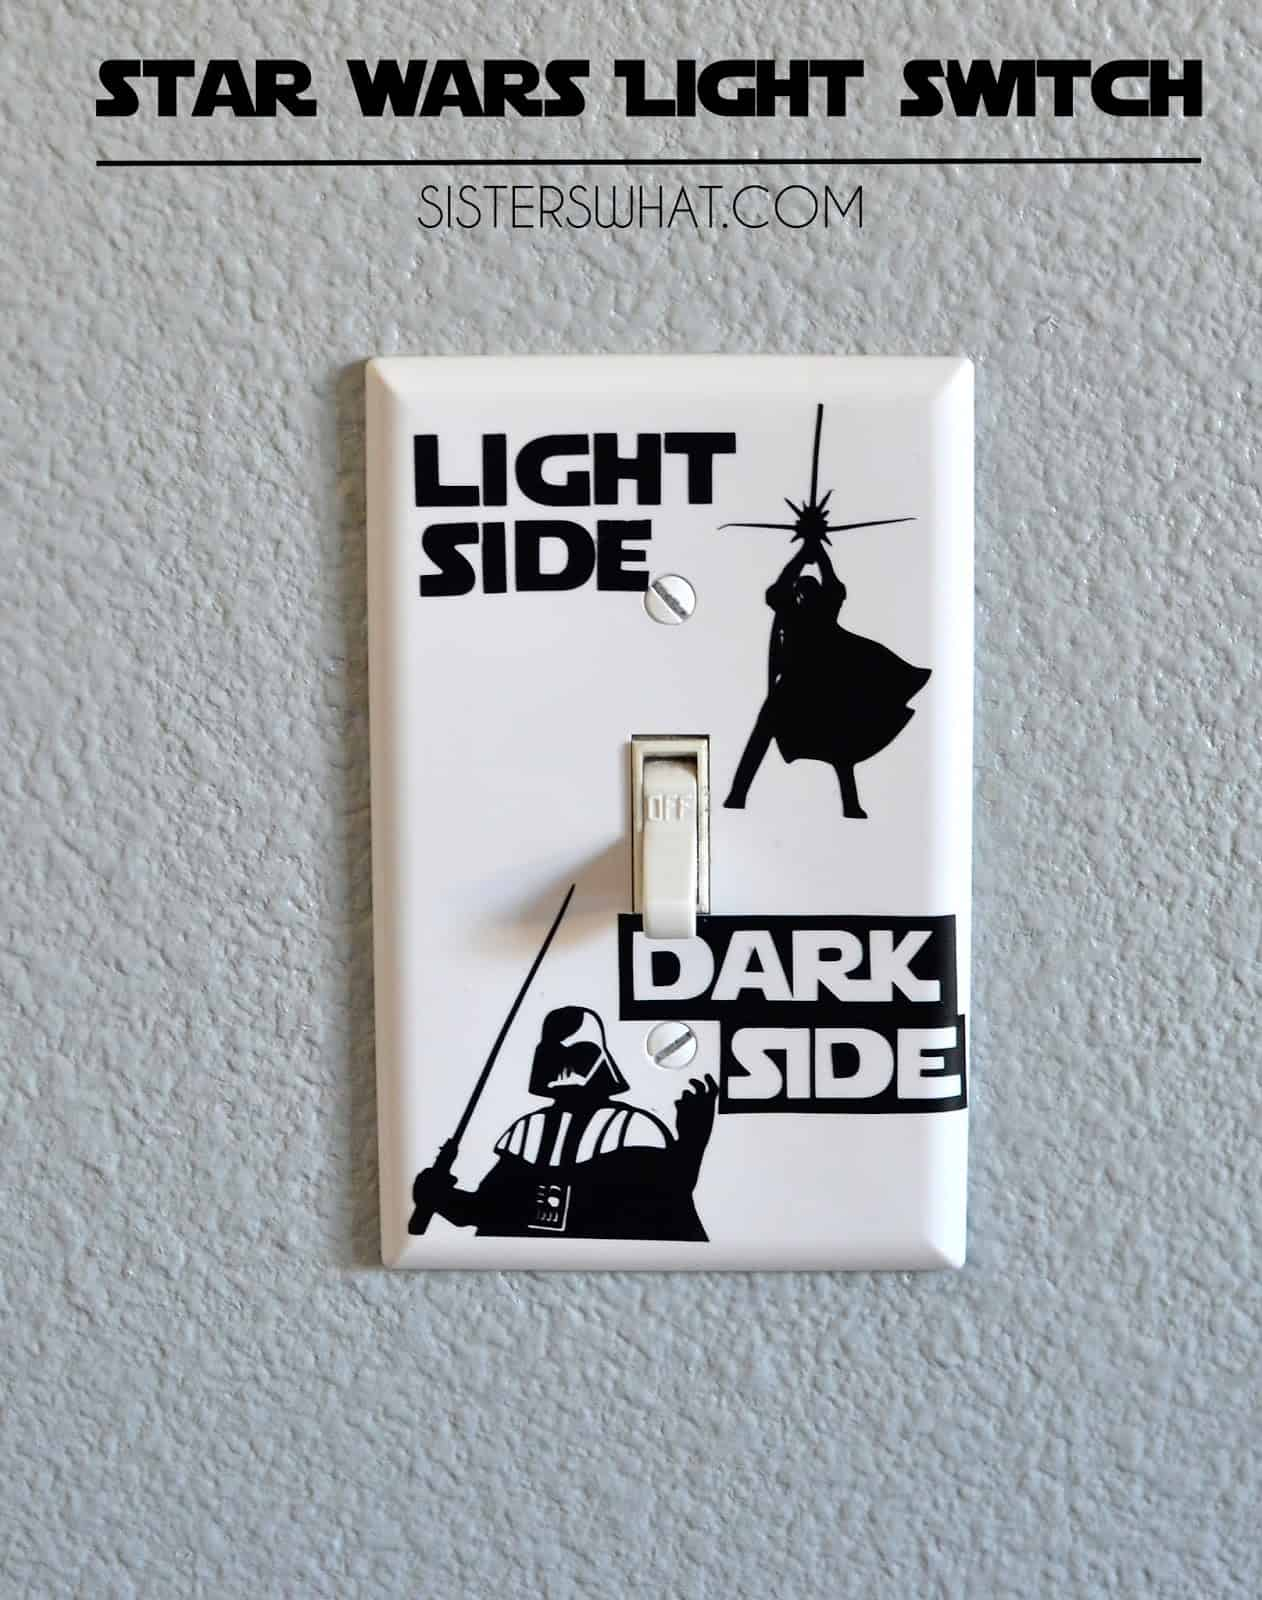 Star wars silhouette light switch